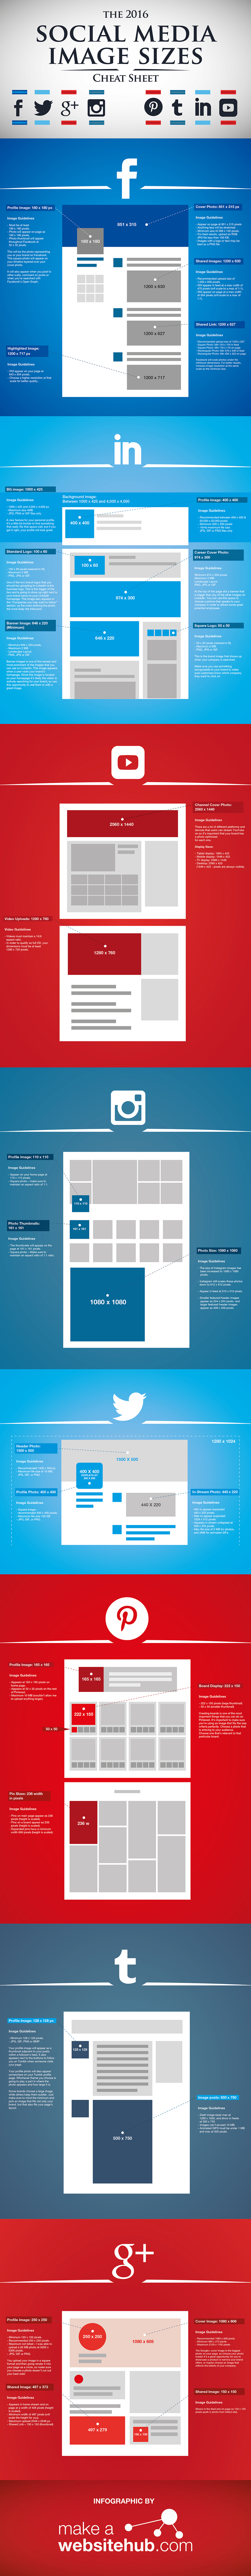 The Amazing Cheat Sheet of 2016 Photo and Image Sizes on Facebook Twitter LinkedIn and Other Social Networks #infographic